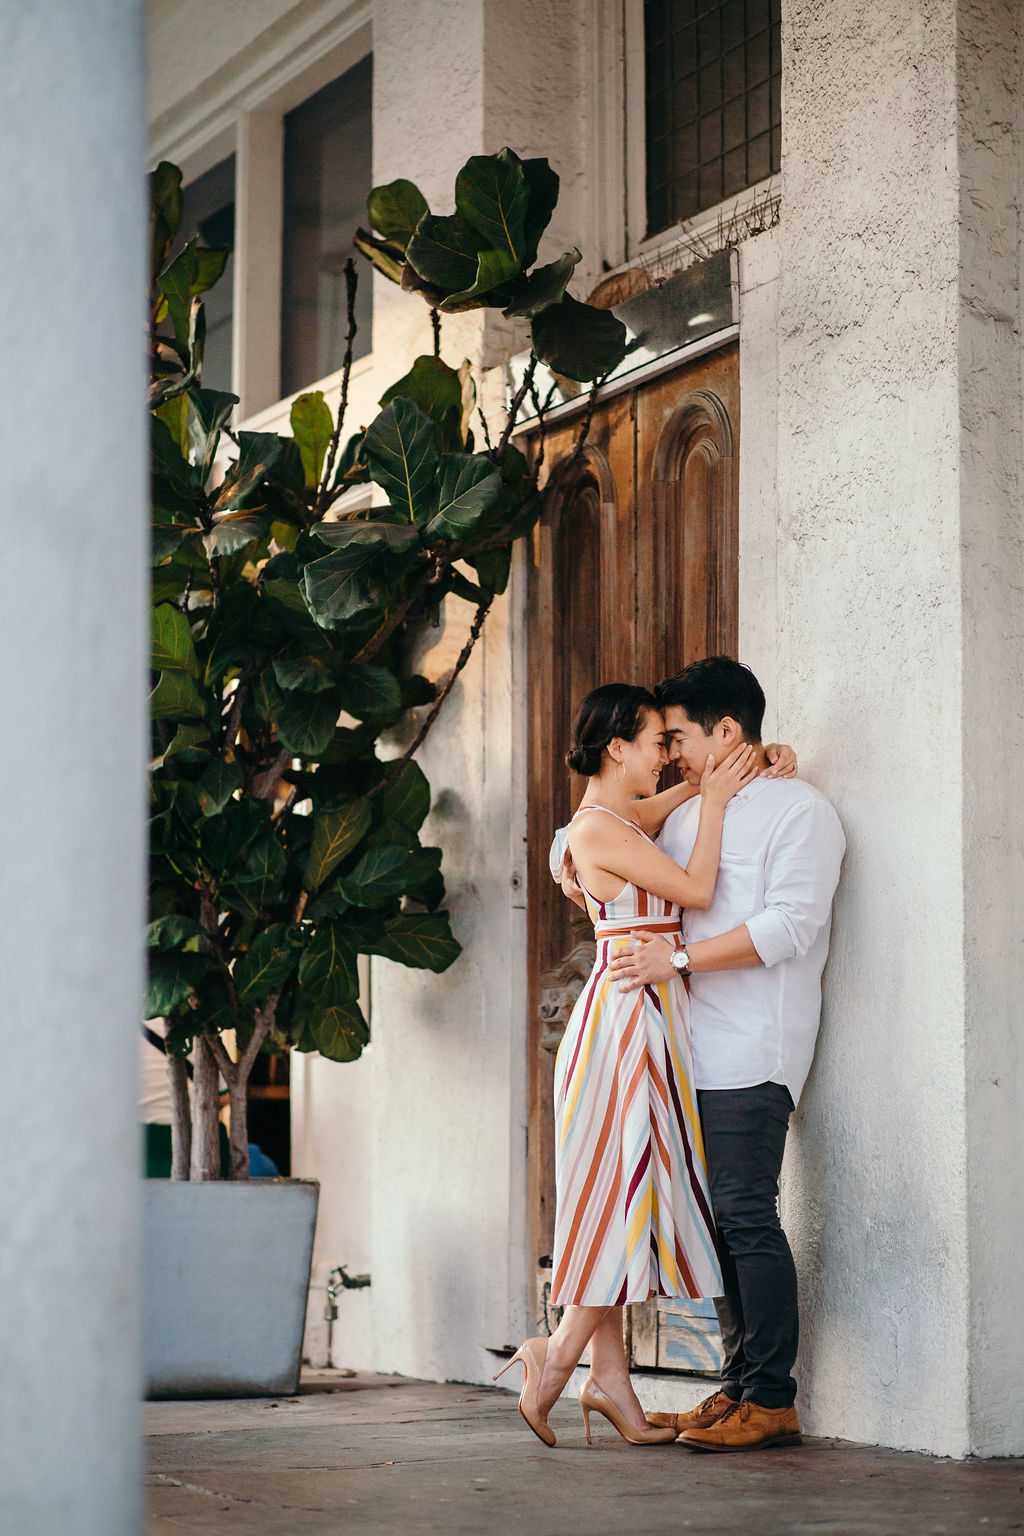 Venice Beach Engagement Photography 5 Los Angeles Orange County Wedding Photographer Joy Theory Co